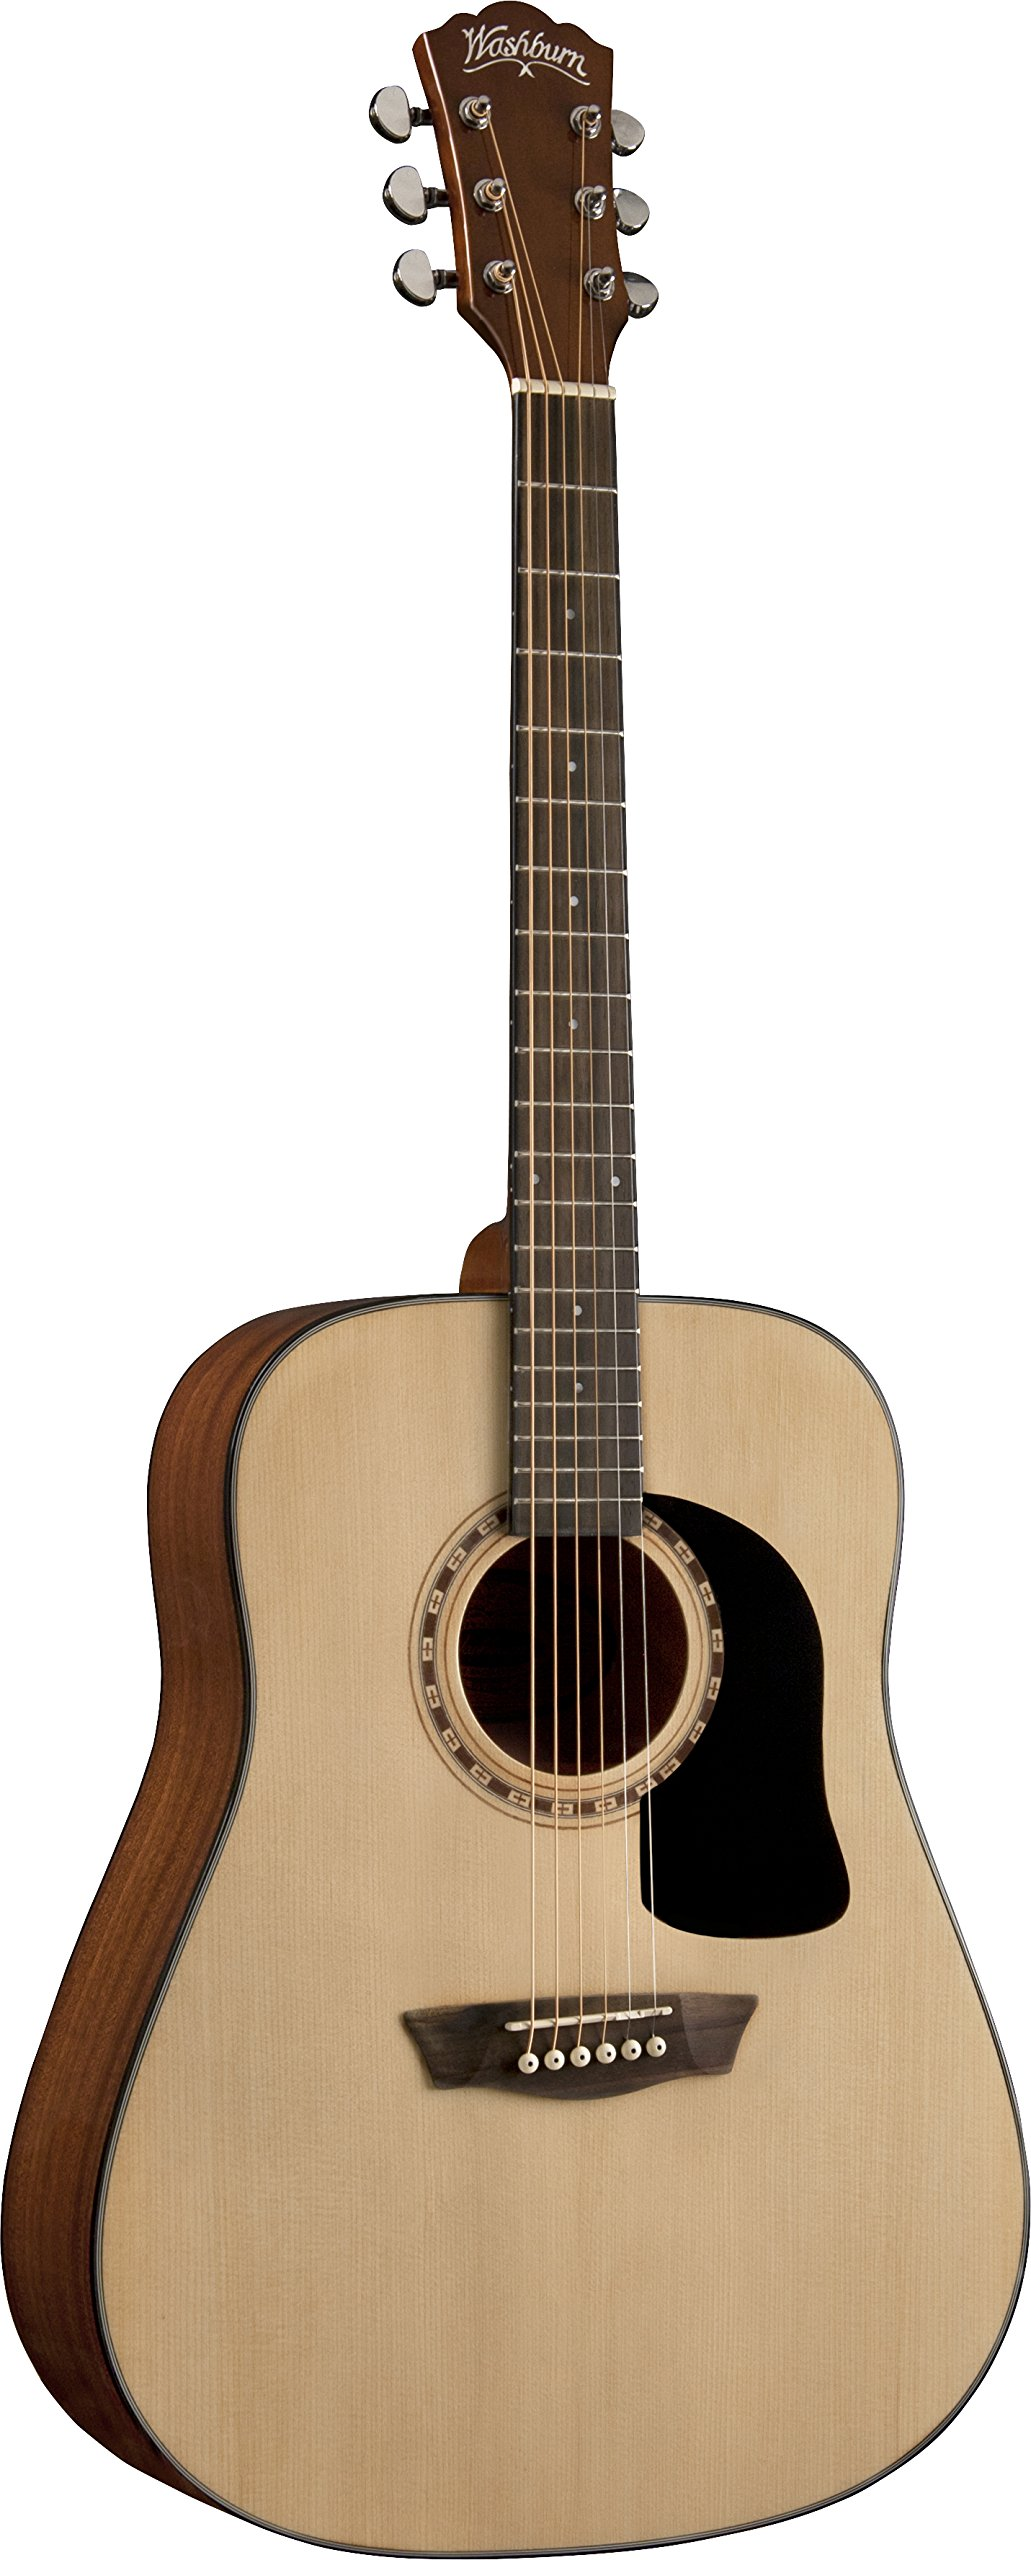 Washburn Apprentice D5 with Case, Acoustic Guitar by Other